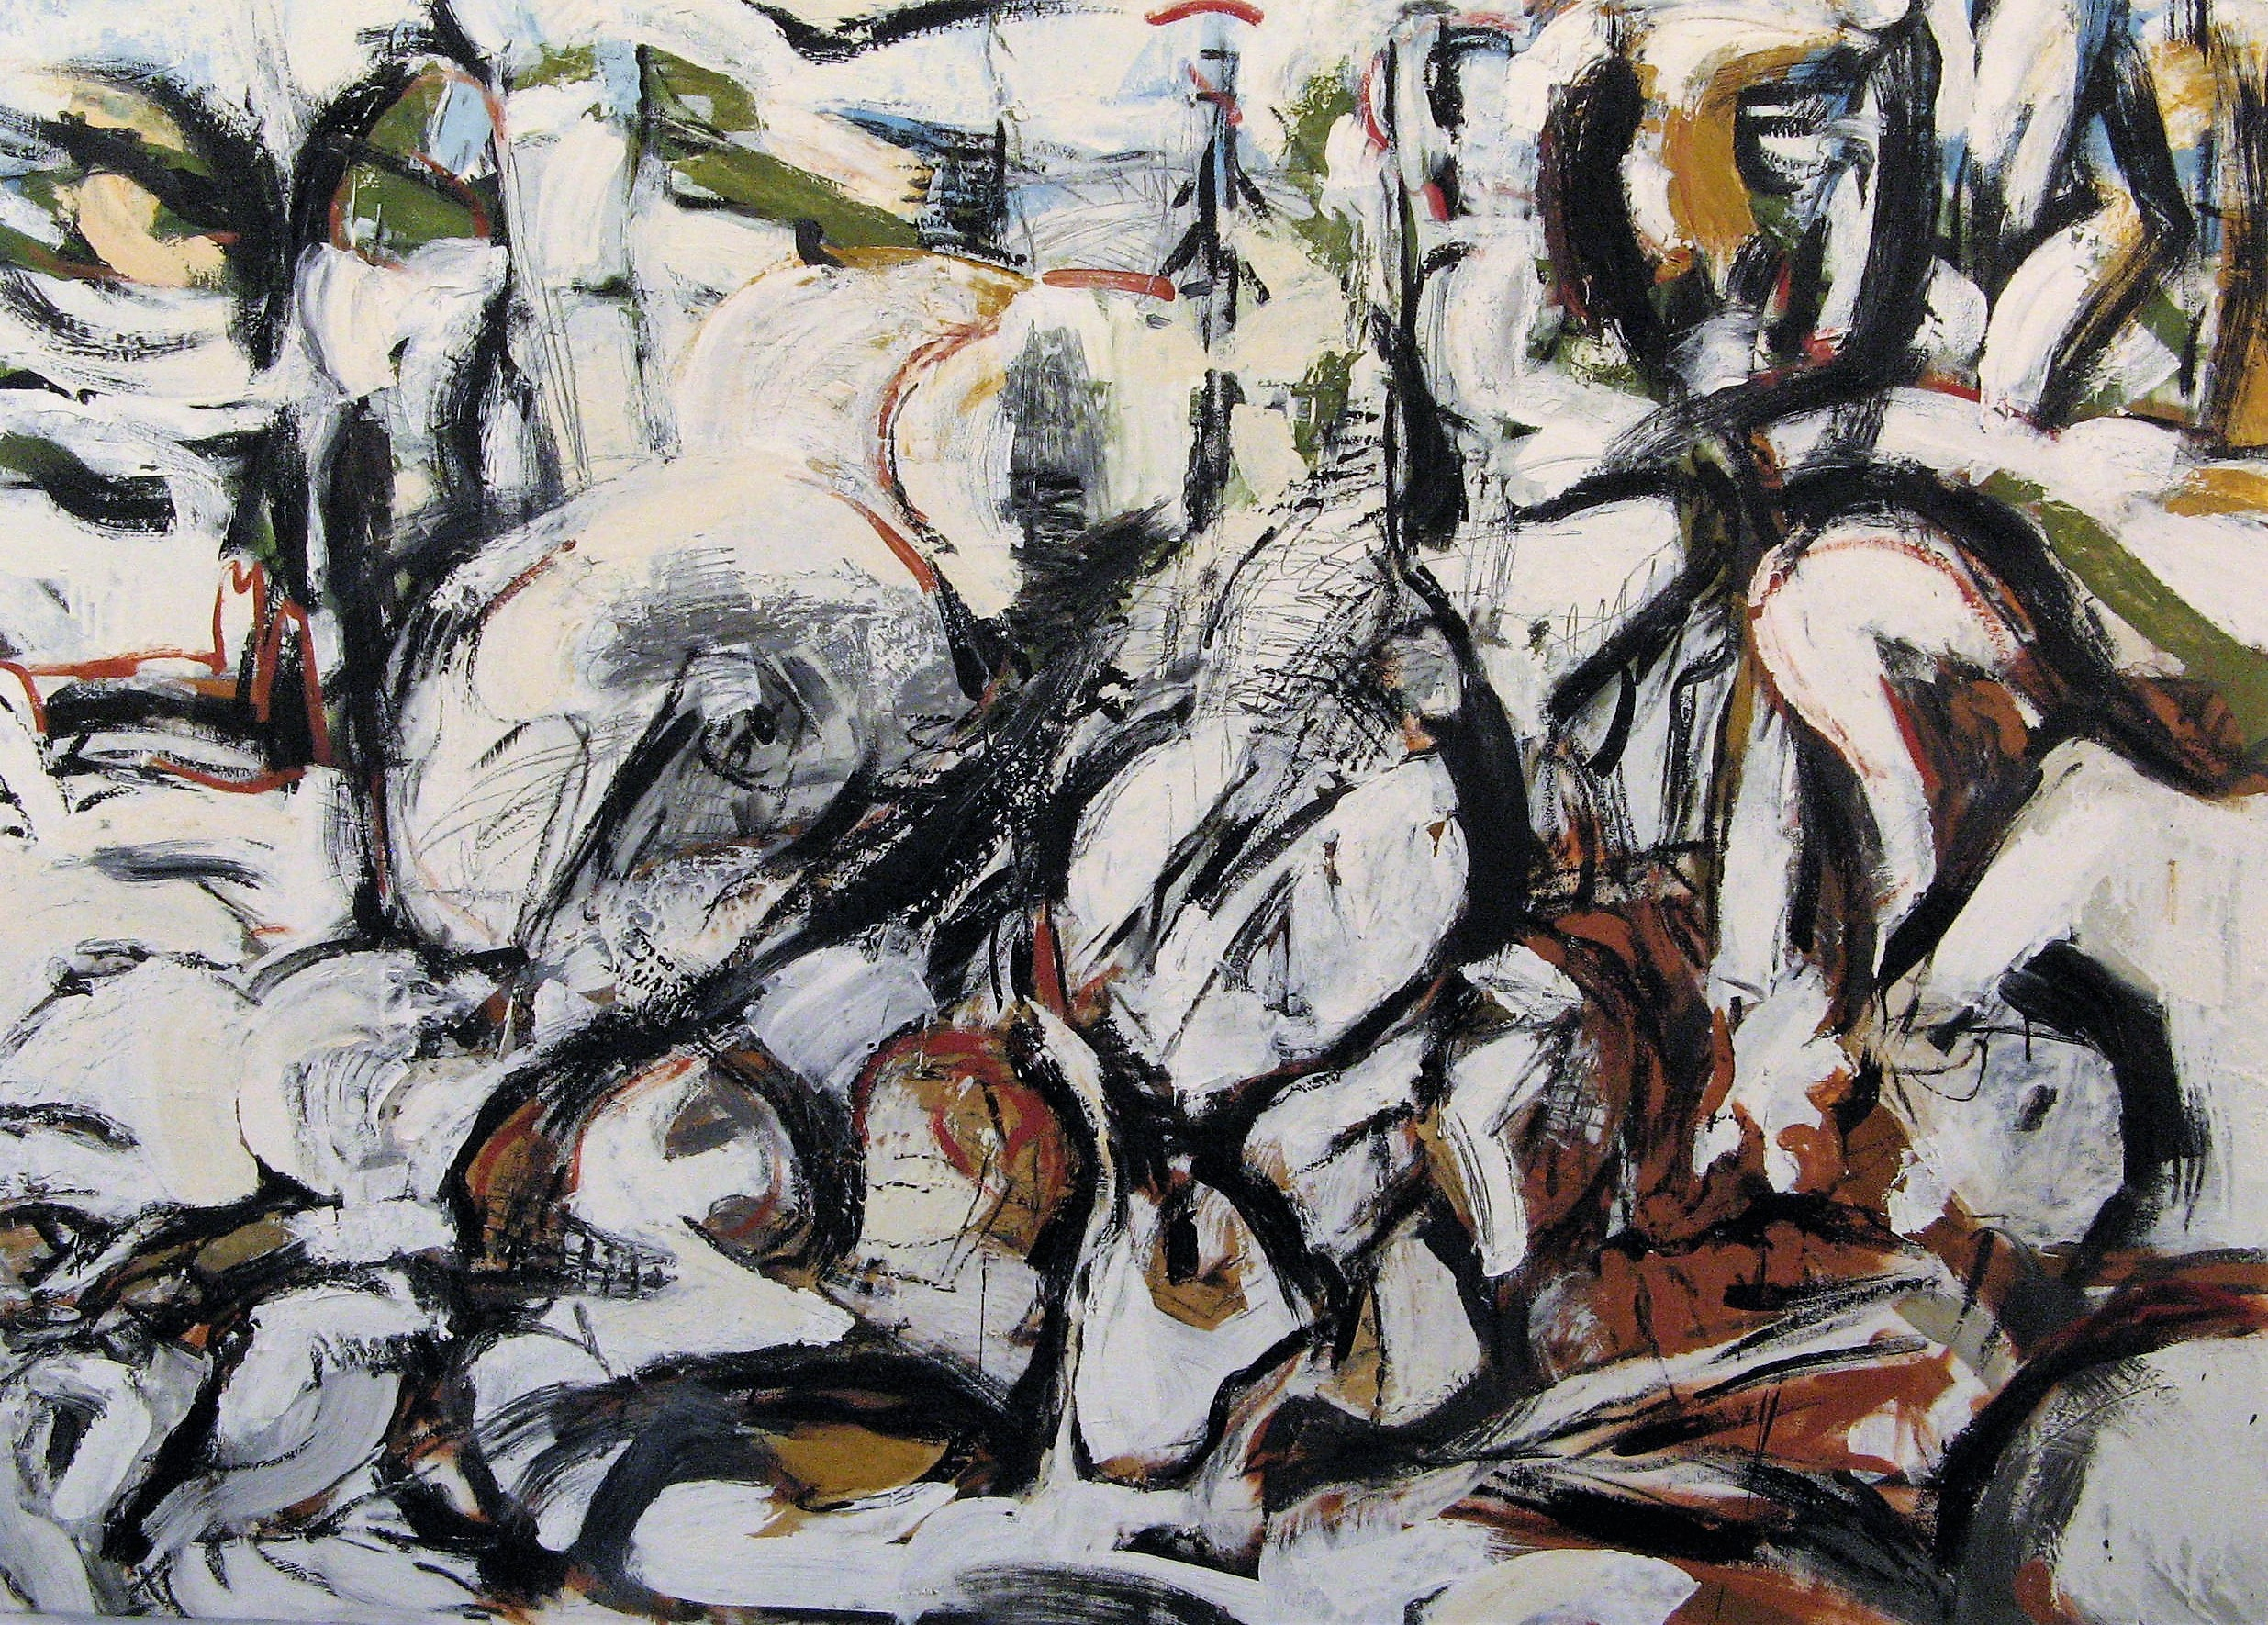 Sticks and Stones 2 , Oil and encaustic on canvas, 36x50